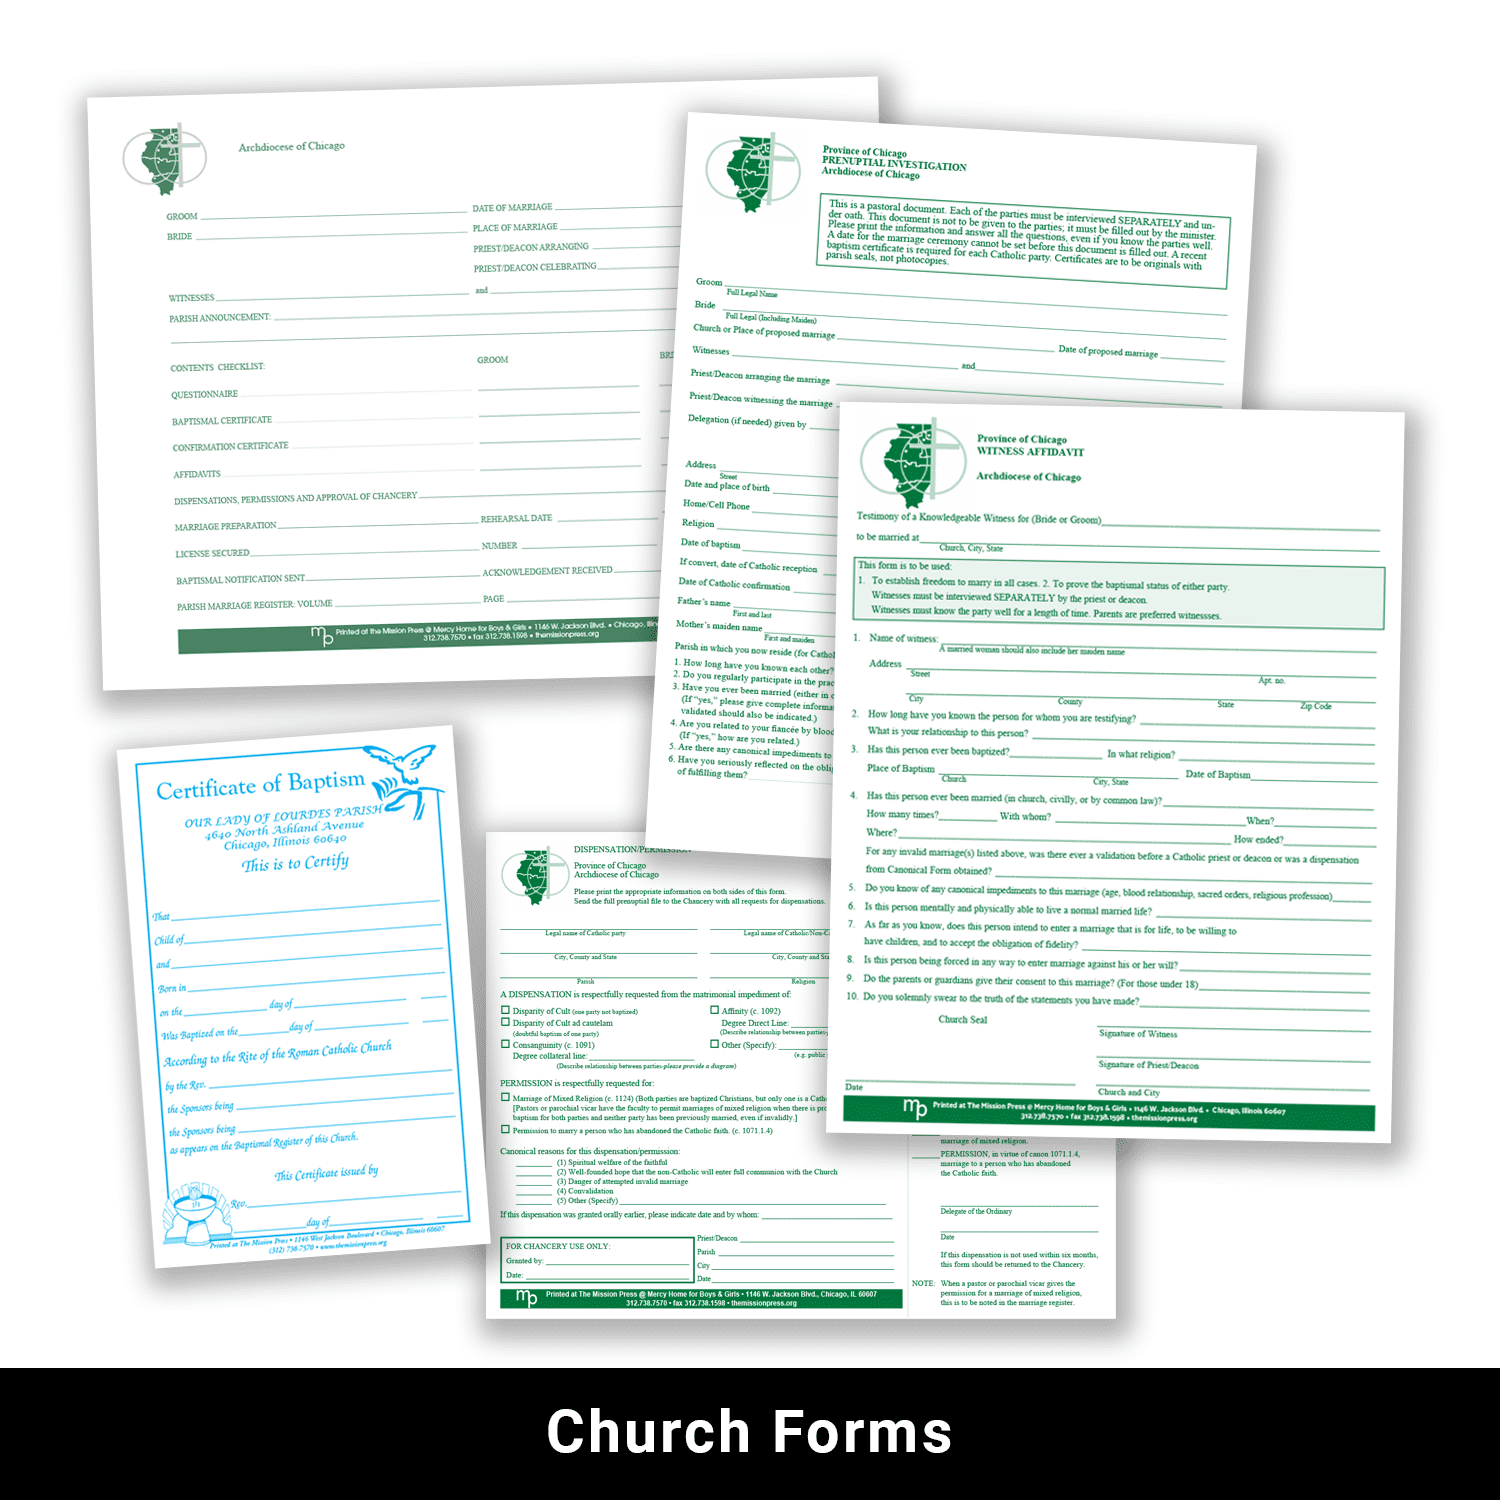 Church forms example